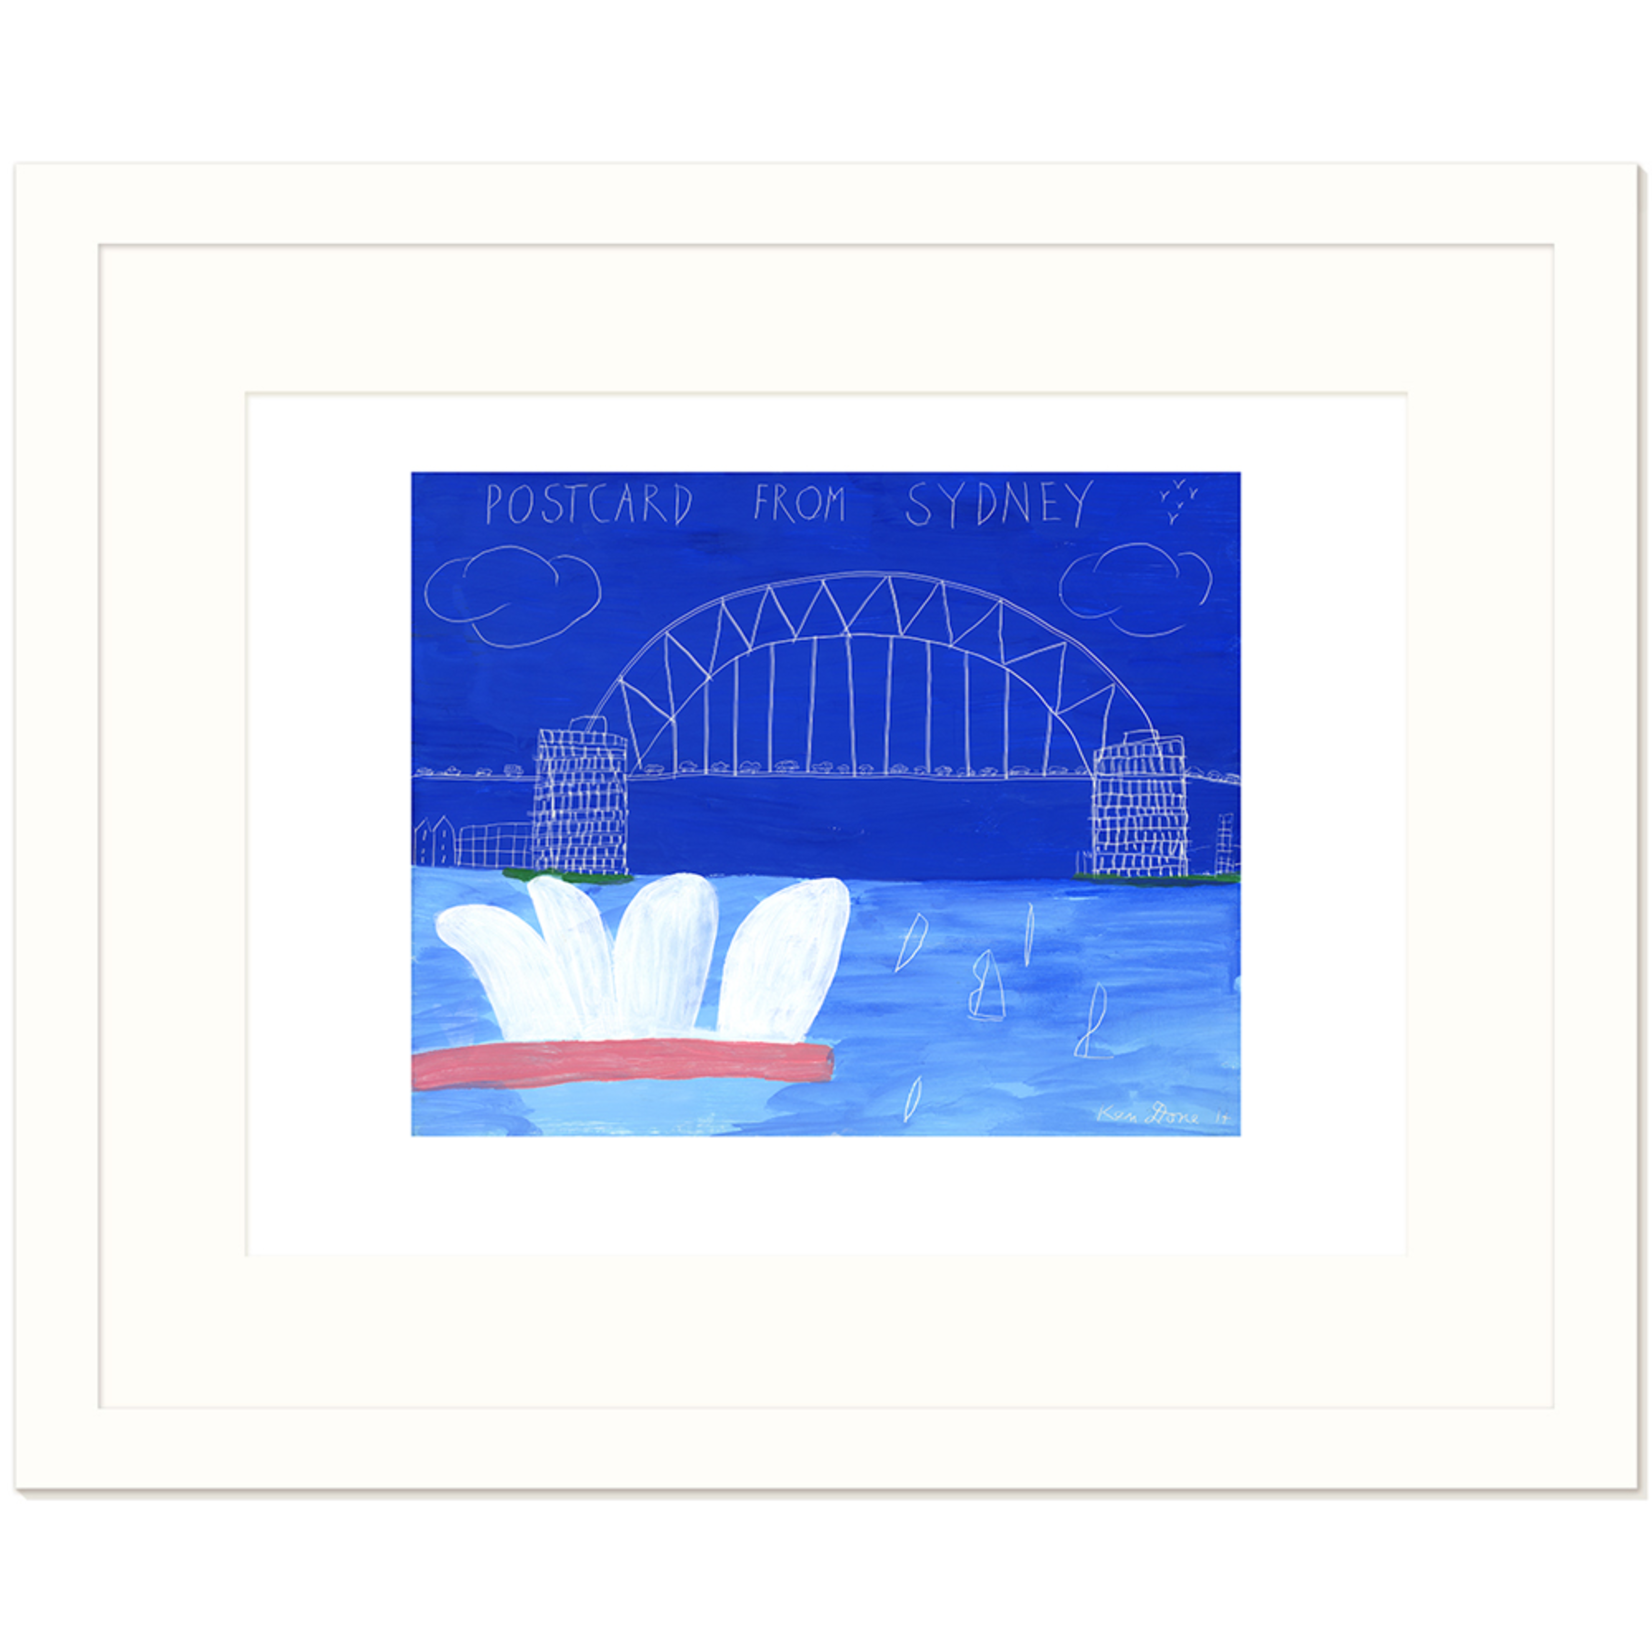 Limited Edition Prints Postcard from Sydney II, 2014